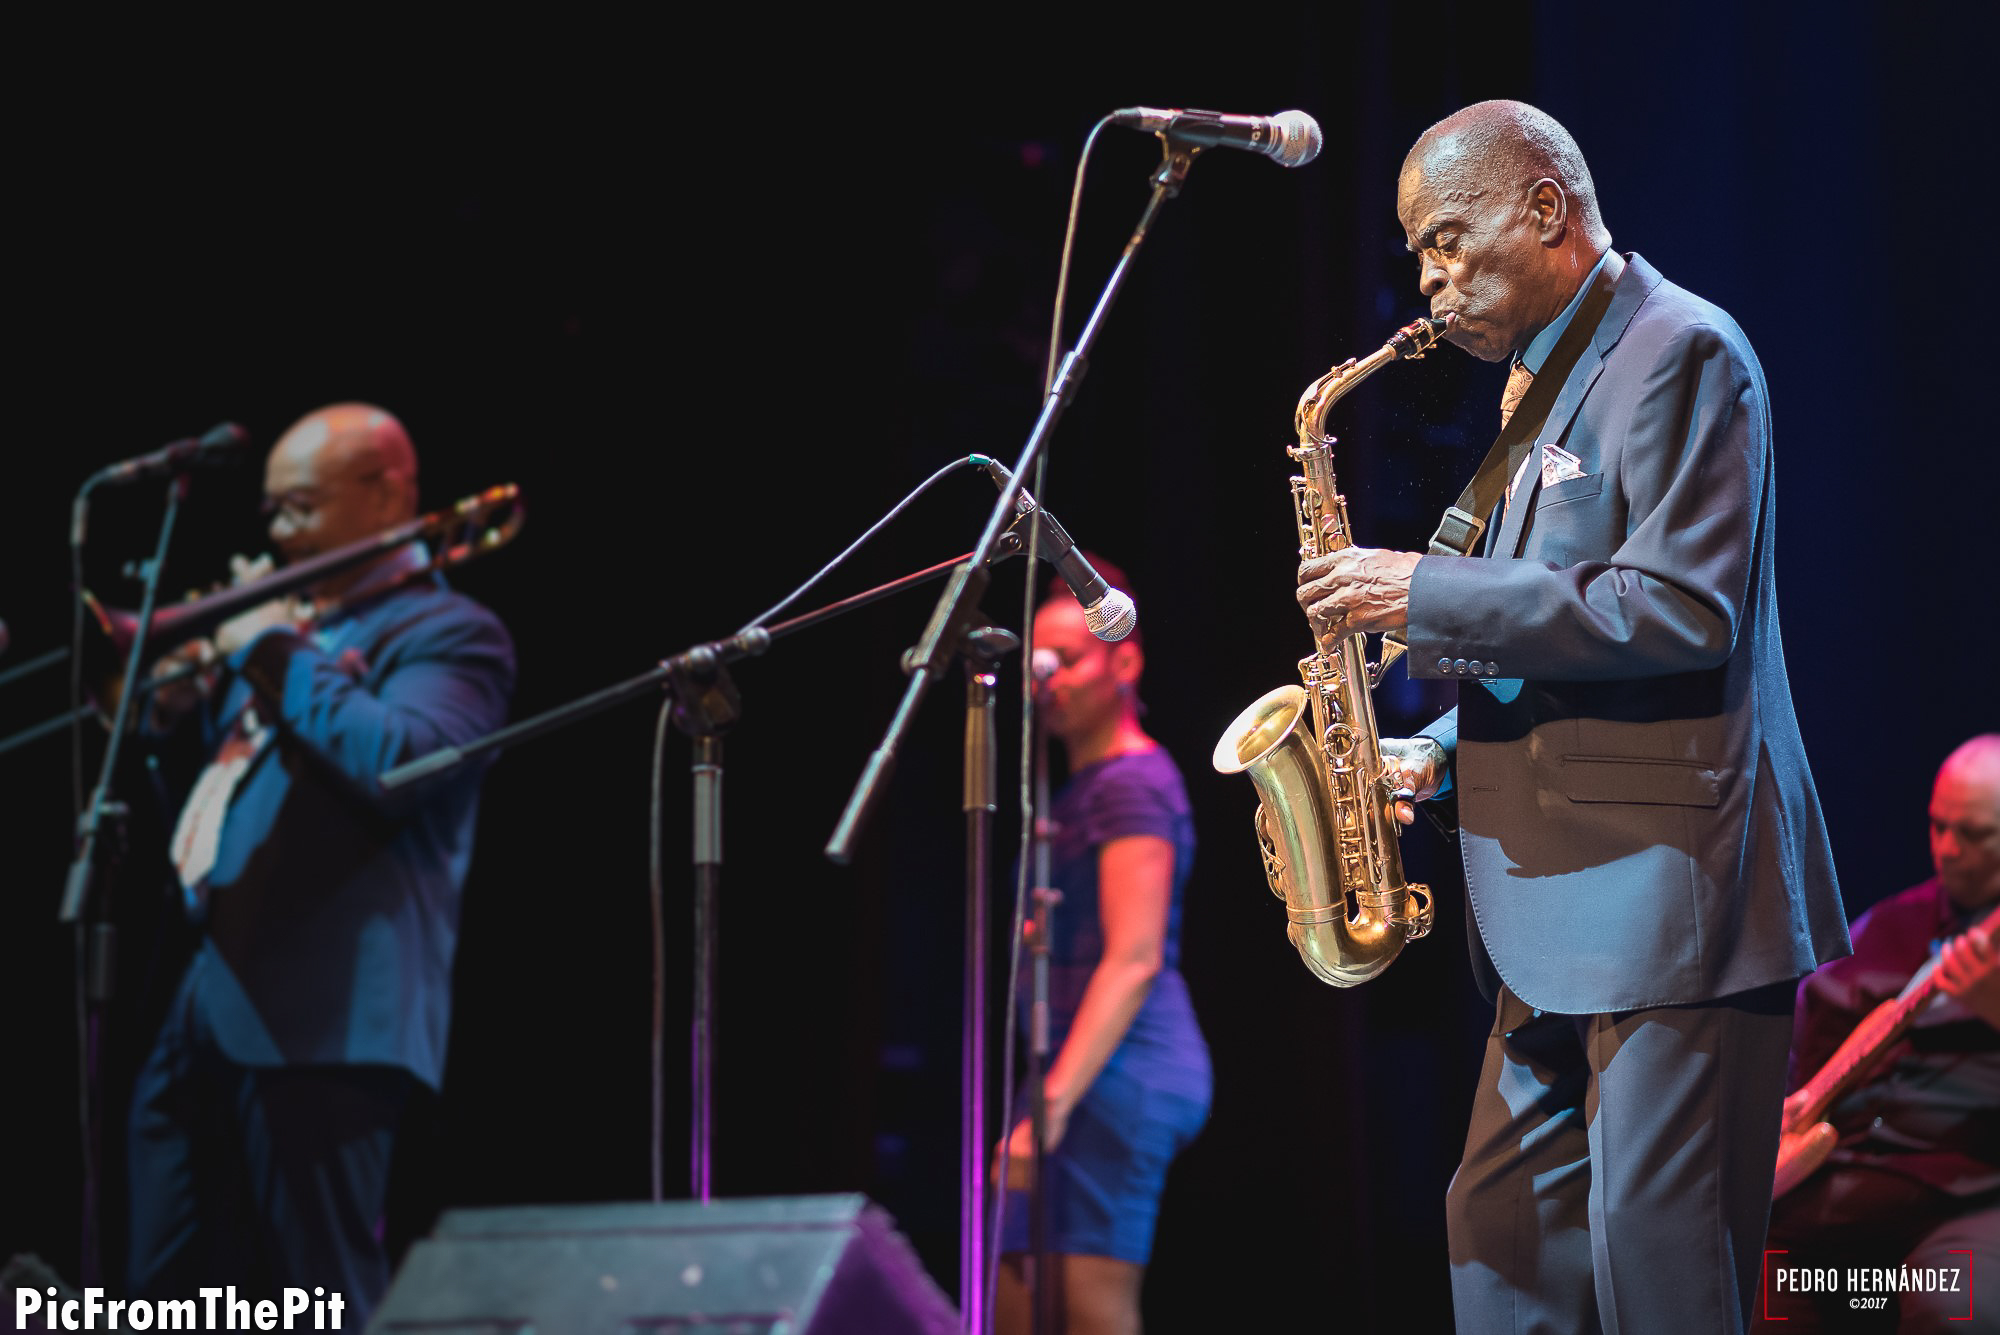 Maceo Parker. D750 85mm f1.8 1/160 ISO3200, Copyright Pedro Hernández @picfromthepit